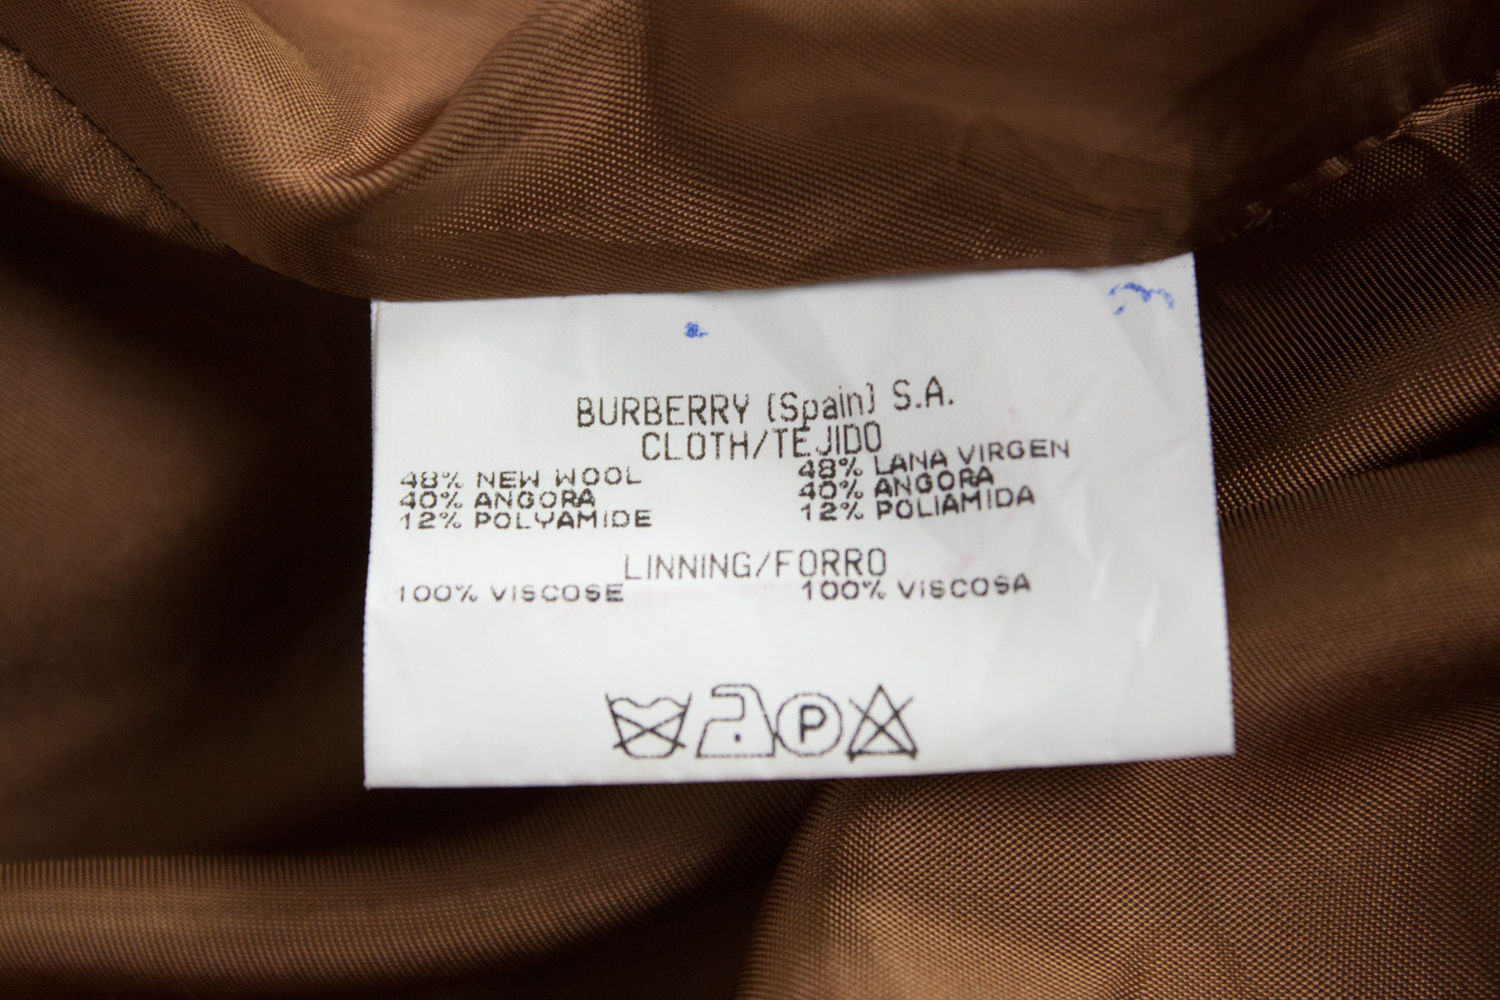 BURBERRY Wool-Angora Blend Double Breasted Camel Coat SIZE USA 16 - secondfirst